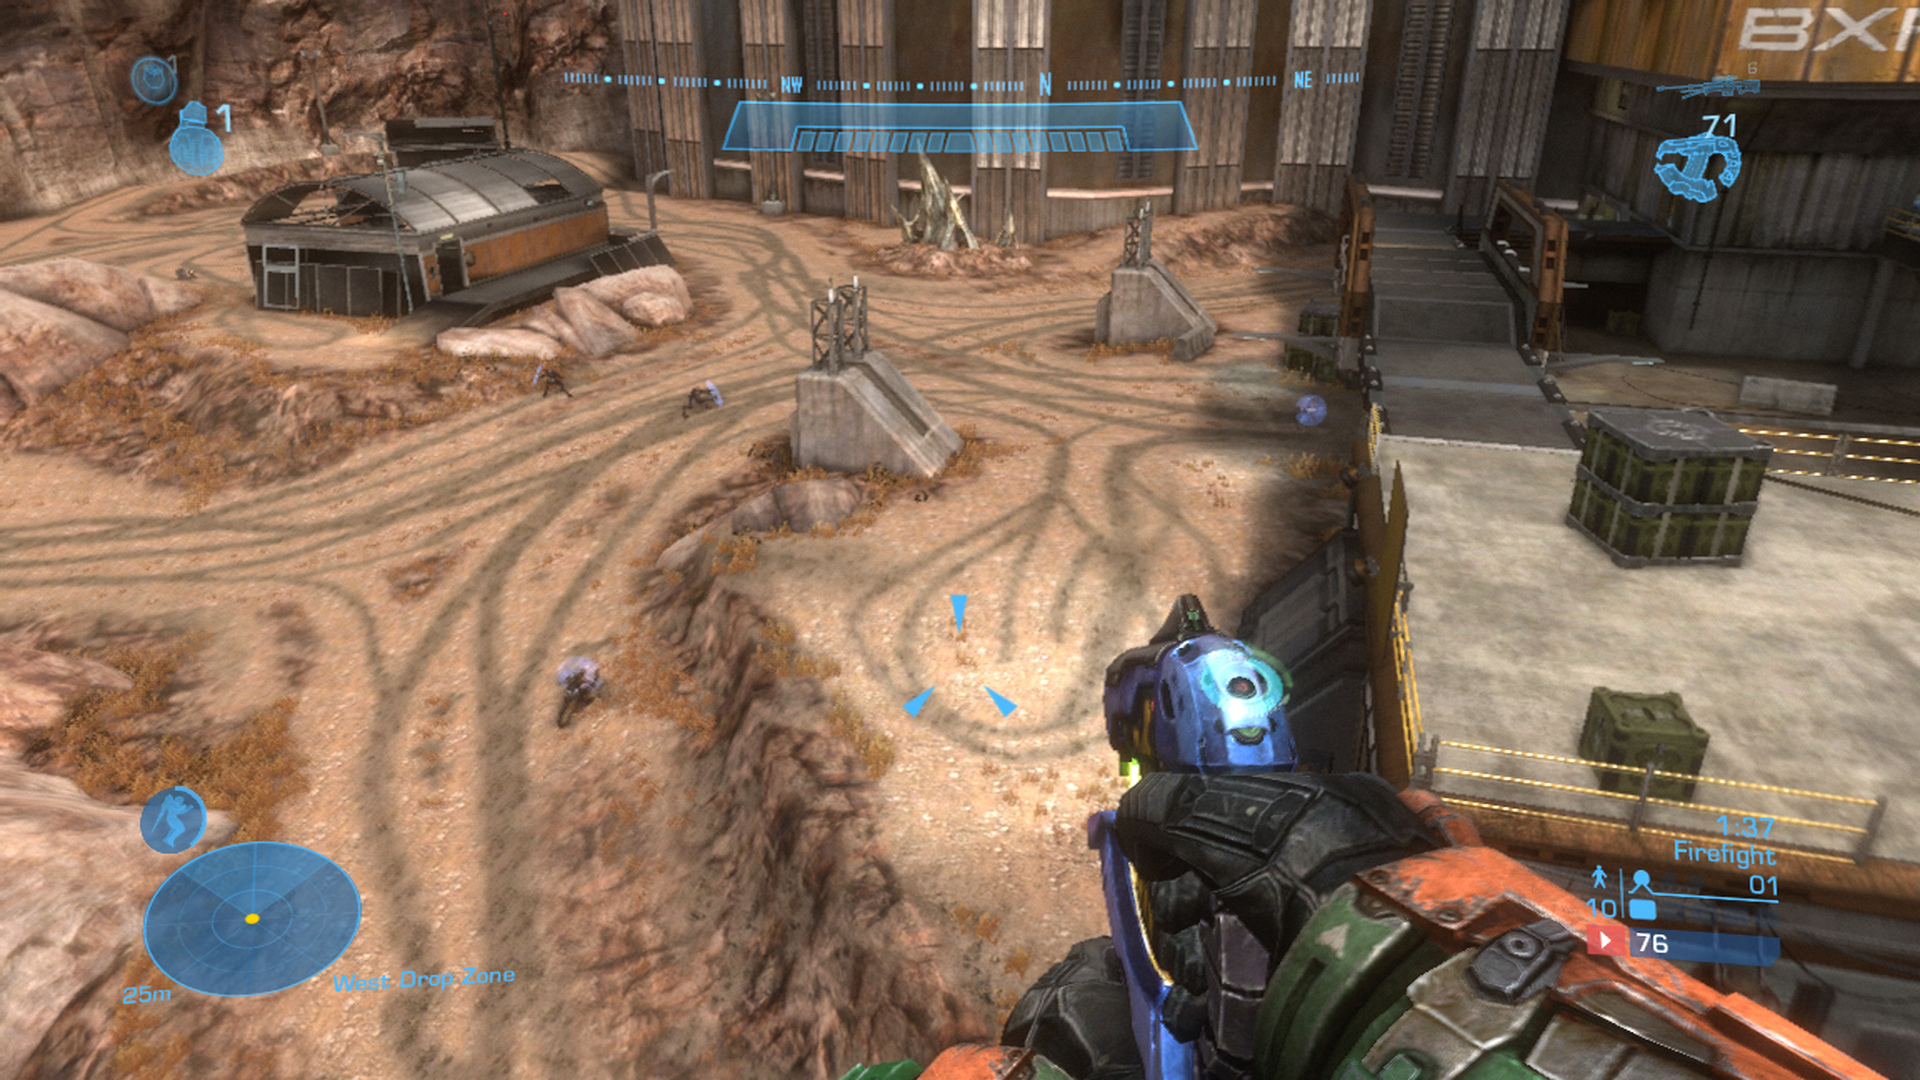 halo reach defiant map pack screenshots for xbox 360 mobygames